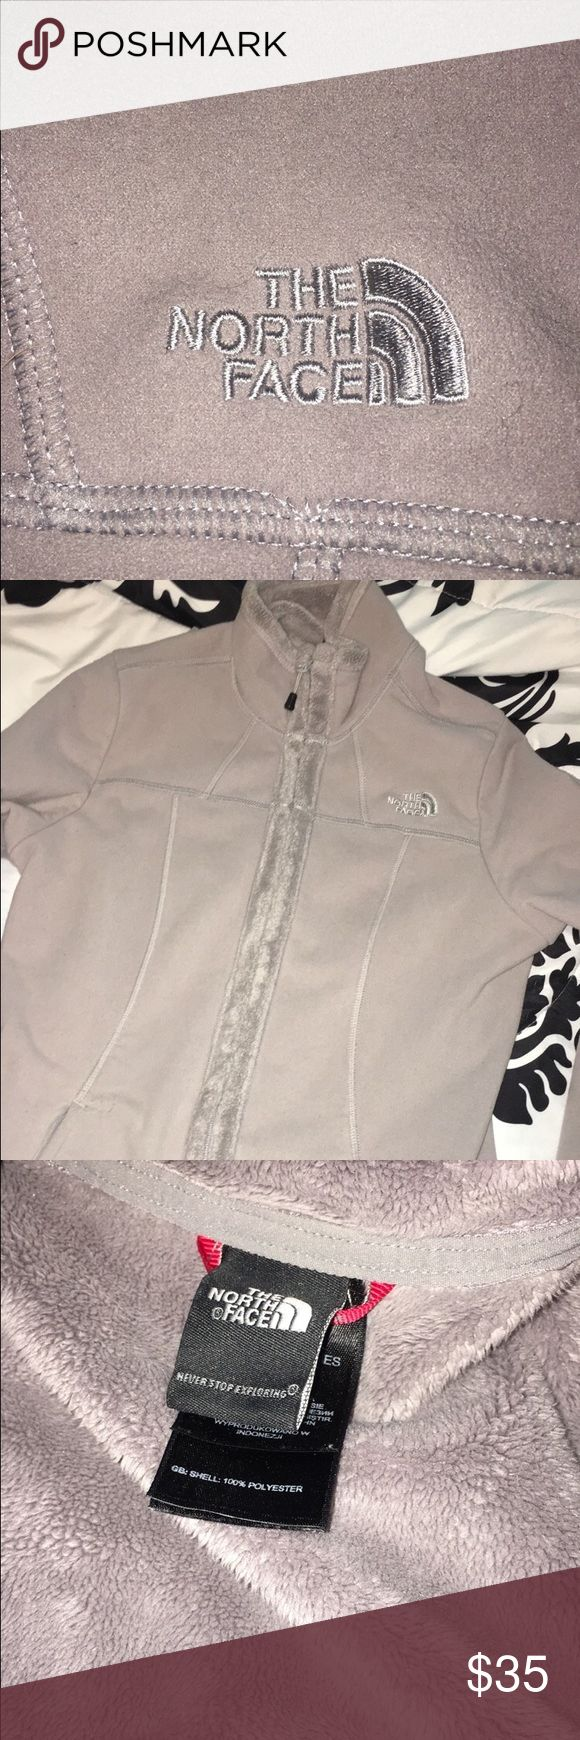 North Face Jacket !!!! very soft- osito like material on the inside. very comfortable and cute! size small, gray ! The North Face Jackets & Coats